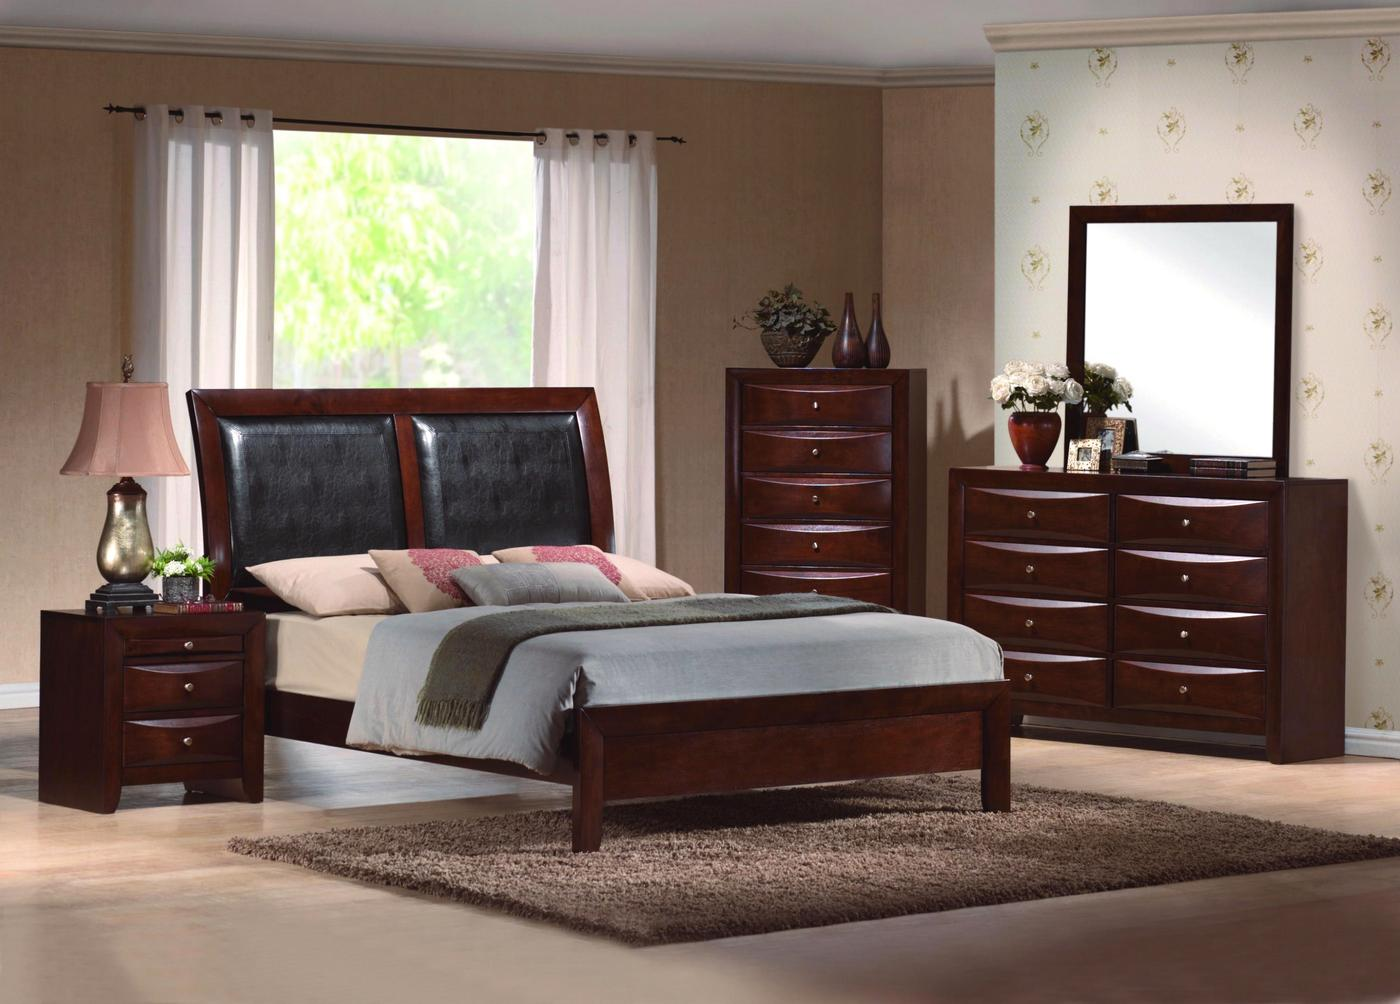 emily upholstered low profile bed contemporary bedroom set